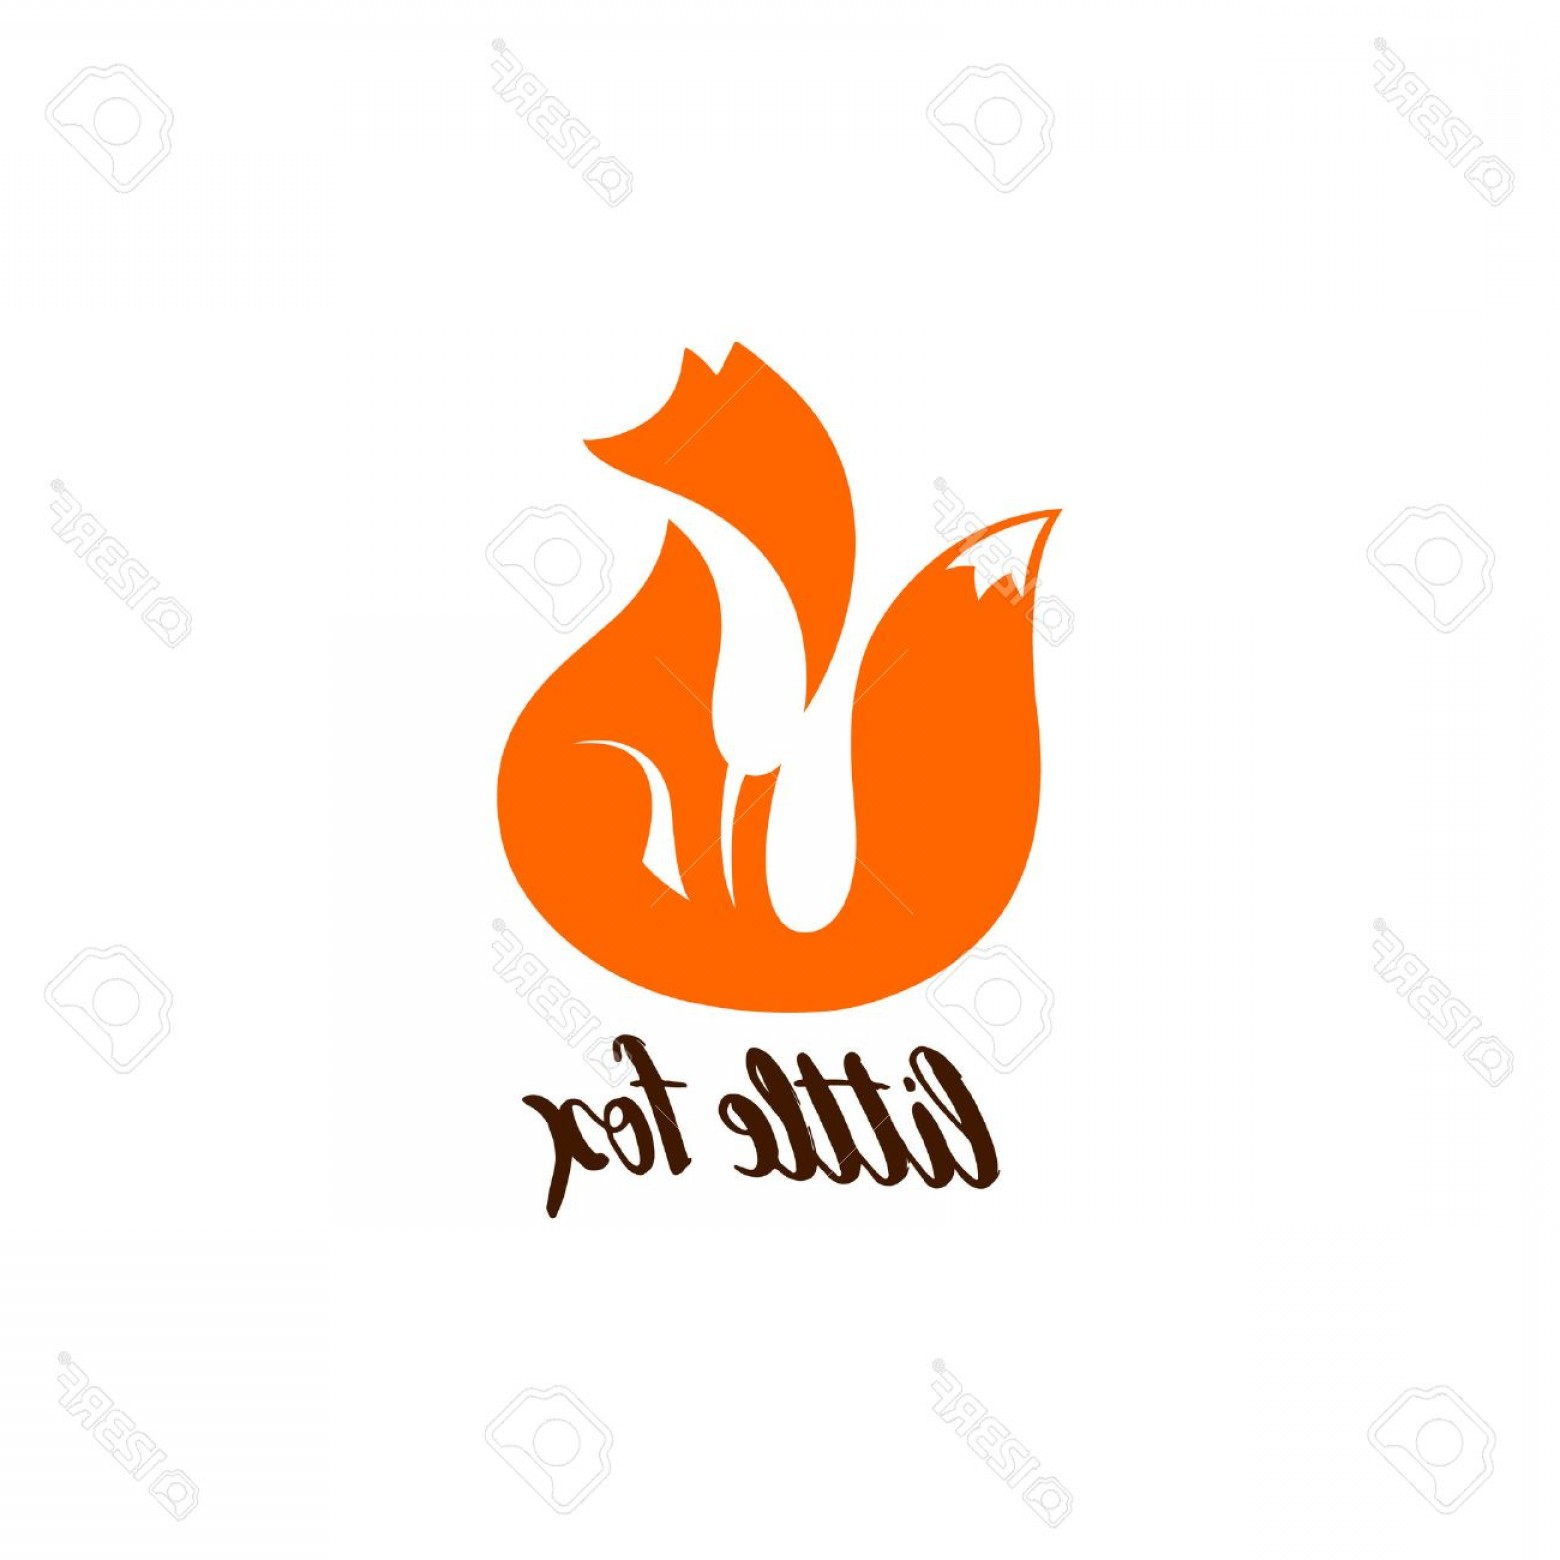 Sitting Fox Logo Vector: Photostock Vector Negative Space Logo With Sitting Fox Orange Fox Silhouette Fox Icon Fox Symbol Fox Sign Isolated On